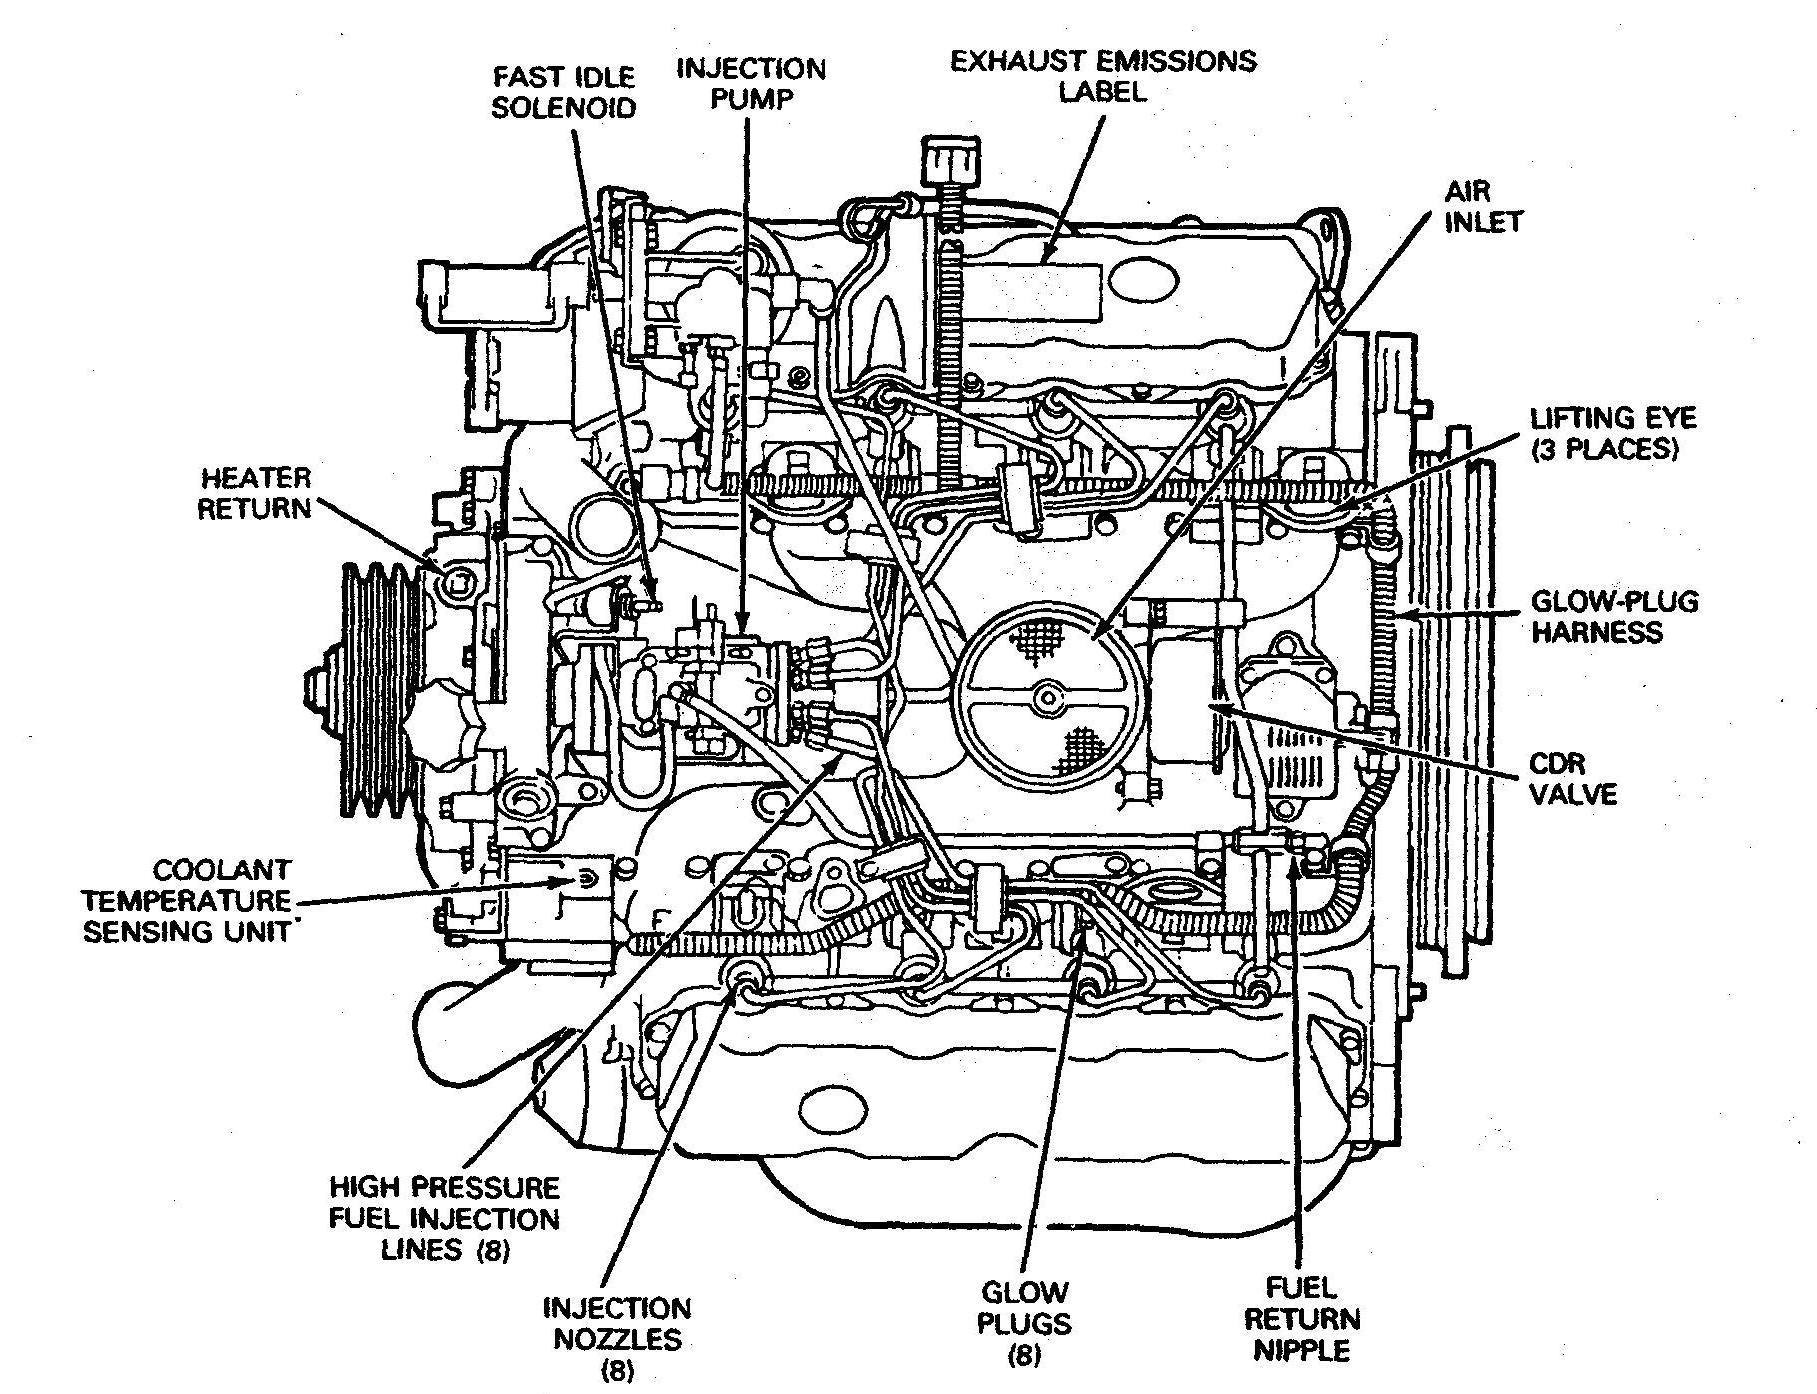 engine cooling diagram wiring diagram for doorbell transformer w 1998 audi 2.8l a4 avant engine diagram engine cooling diagram automotive engine diagram wiring diagrams of engine cooling diagram wiring diagram for doorbell